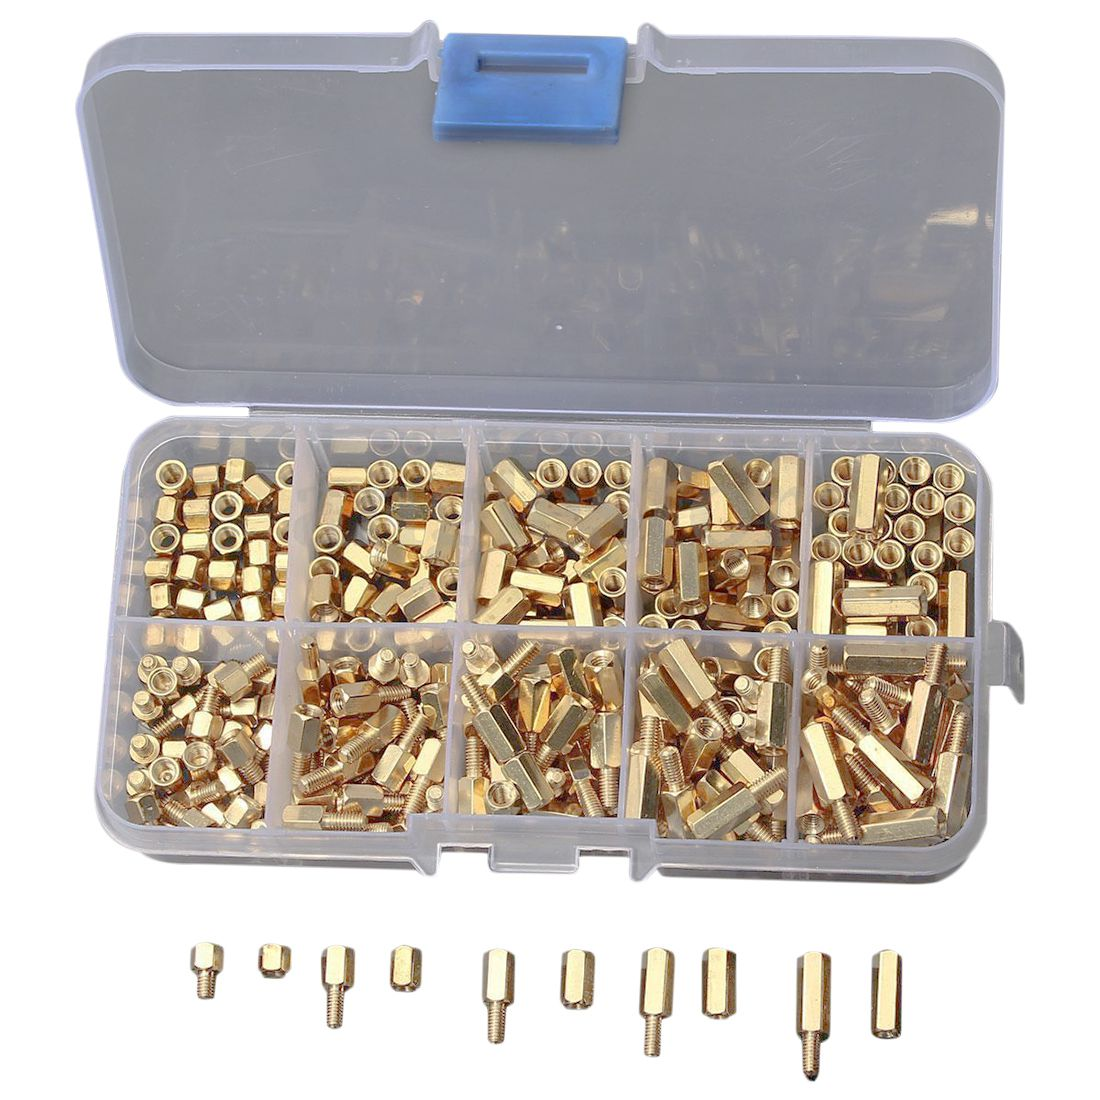 300Pcs/Kit M3 Screw Nut 4-12mm Spacer Hexagonal Brass Isolation Column Threaded Motherboard Standoffs Yellow zenhosit 300pcs female male brass copper m3 hex column spacer threaded screw nut pillars knurled standoff spacer kit